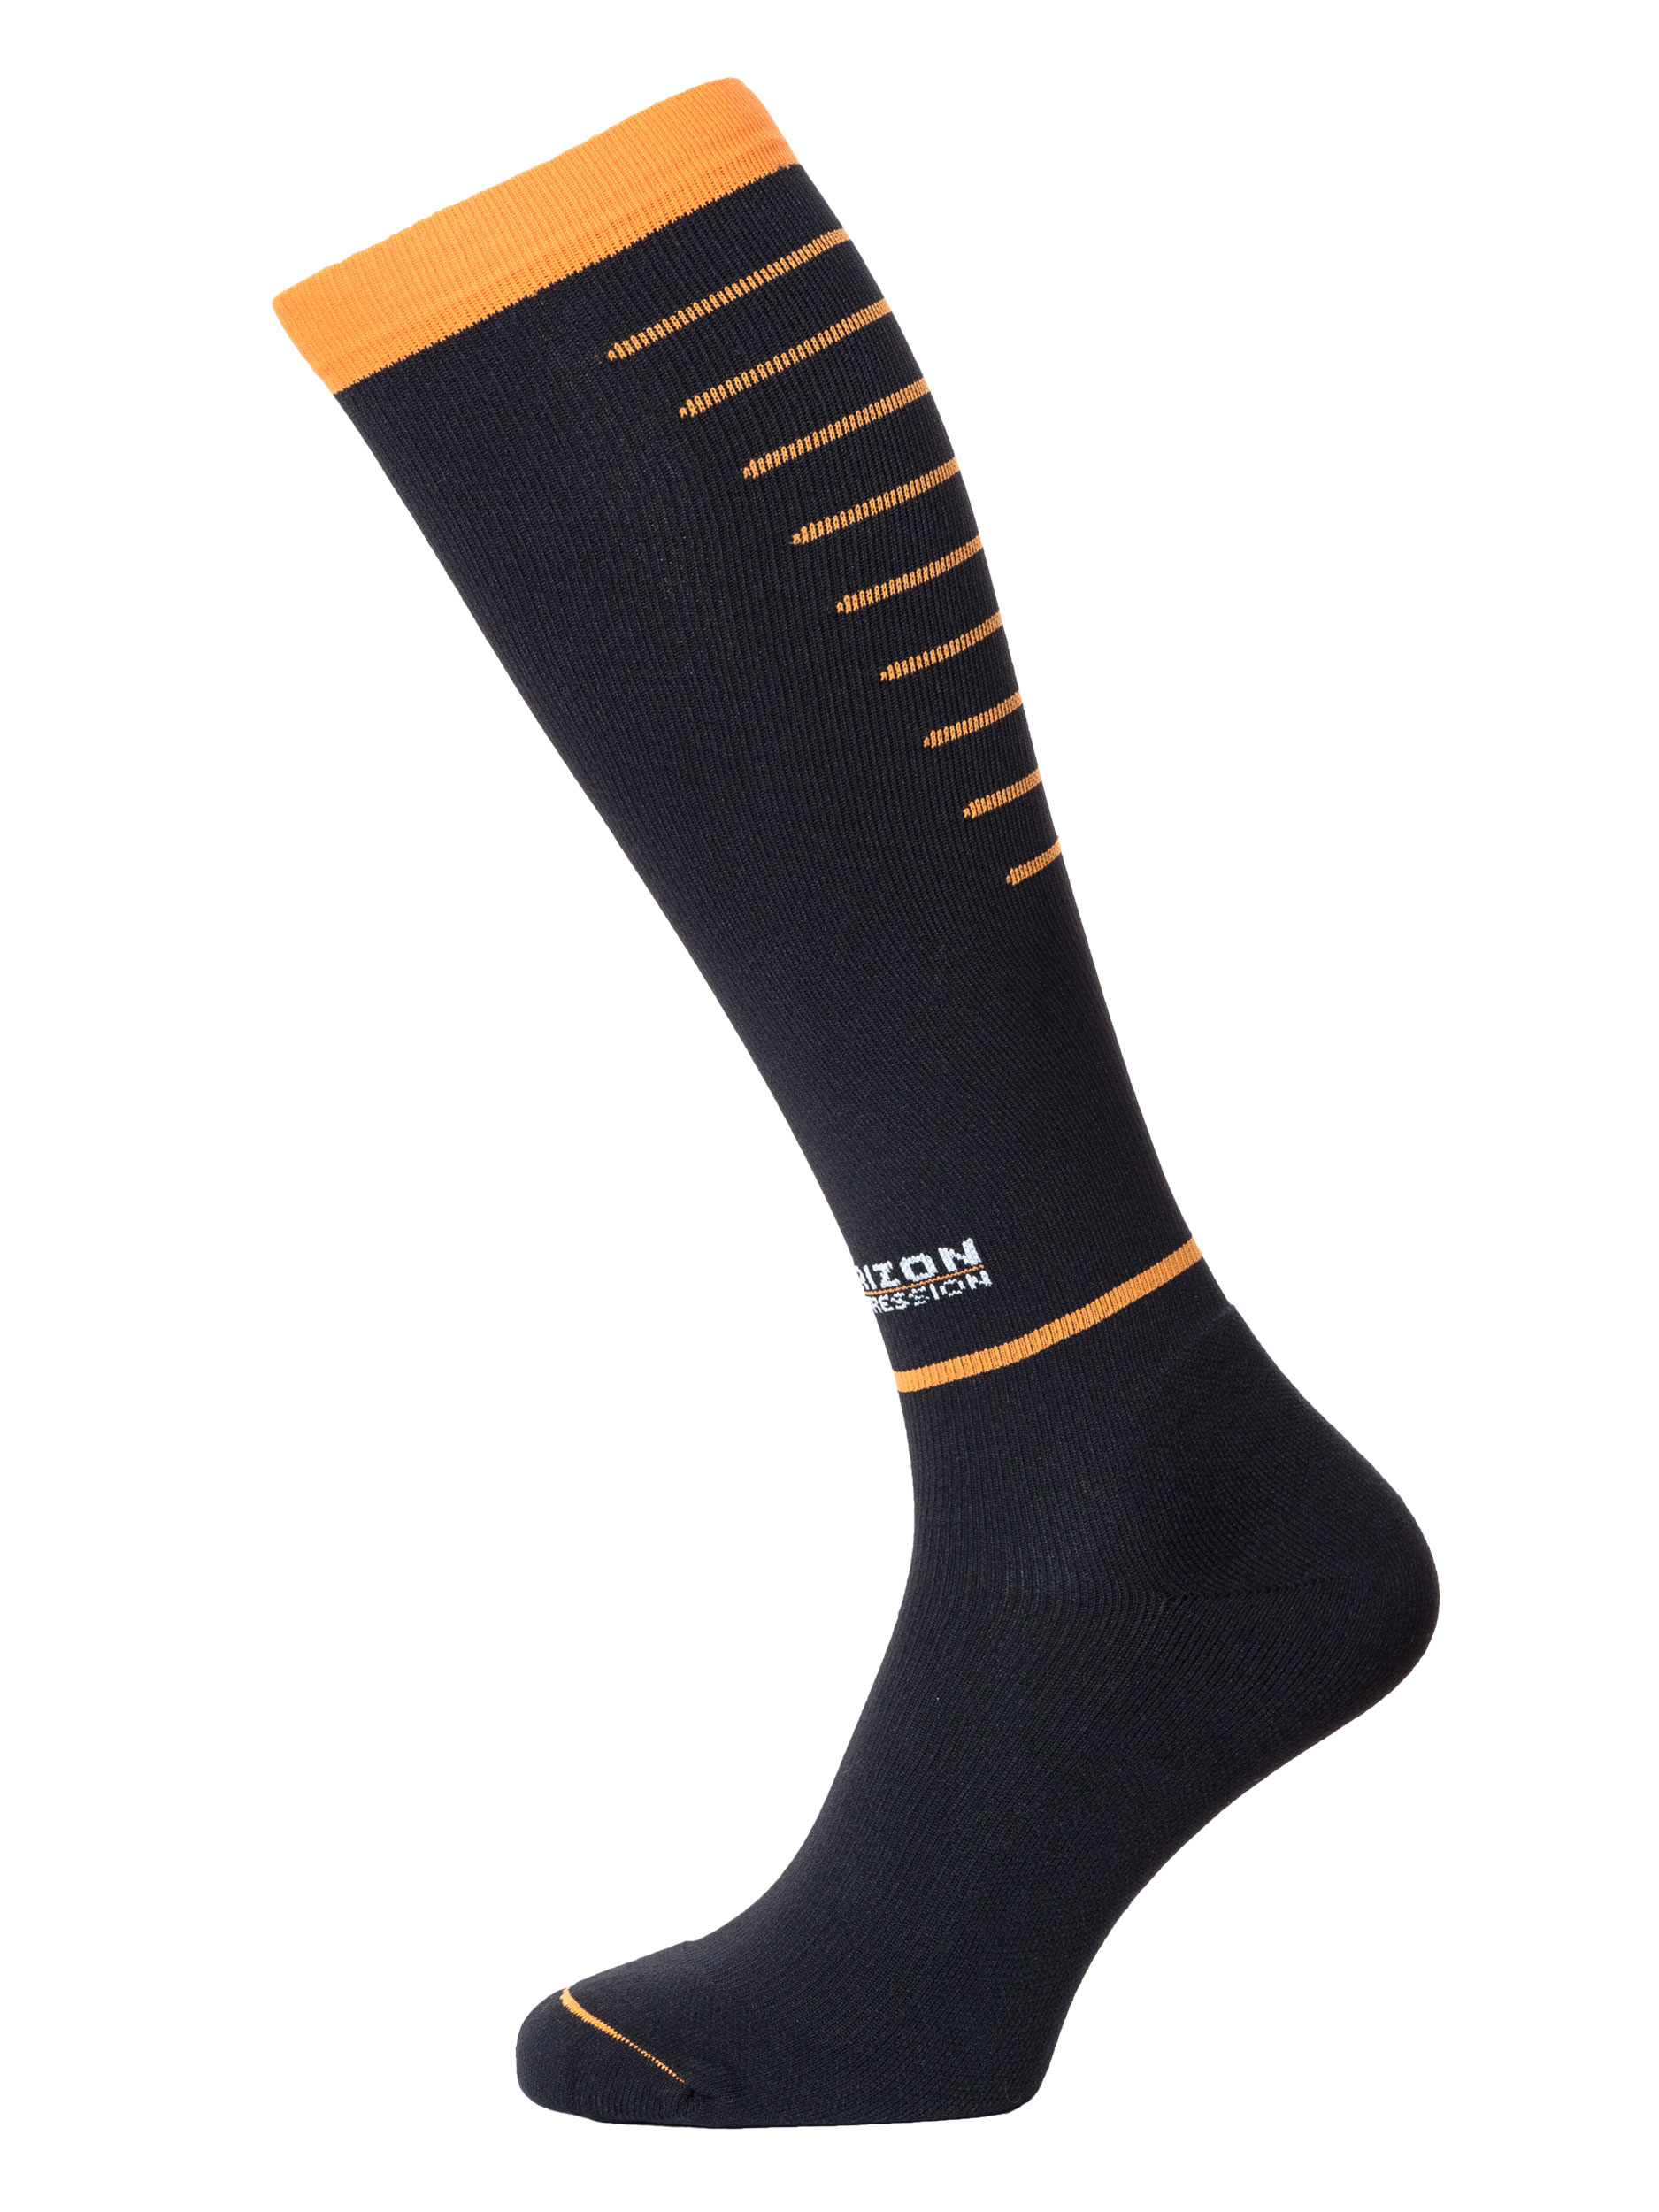 Compression Over Calf Black/Orange